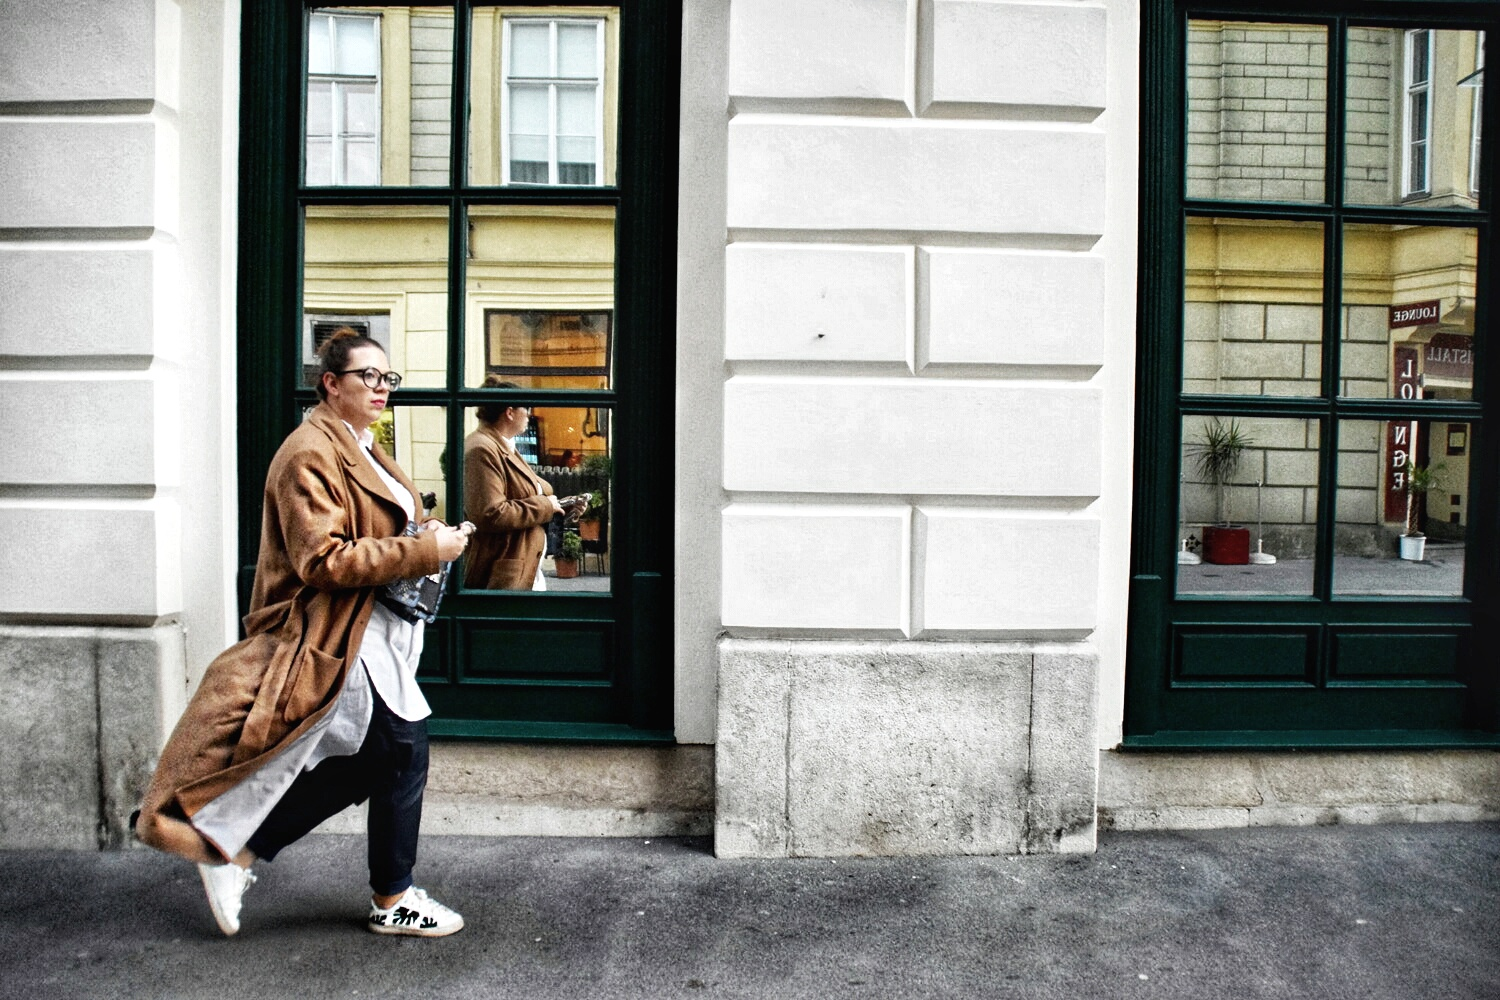 Outfit : Camelcoat & Fake Leather Pants belloya4